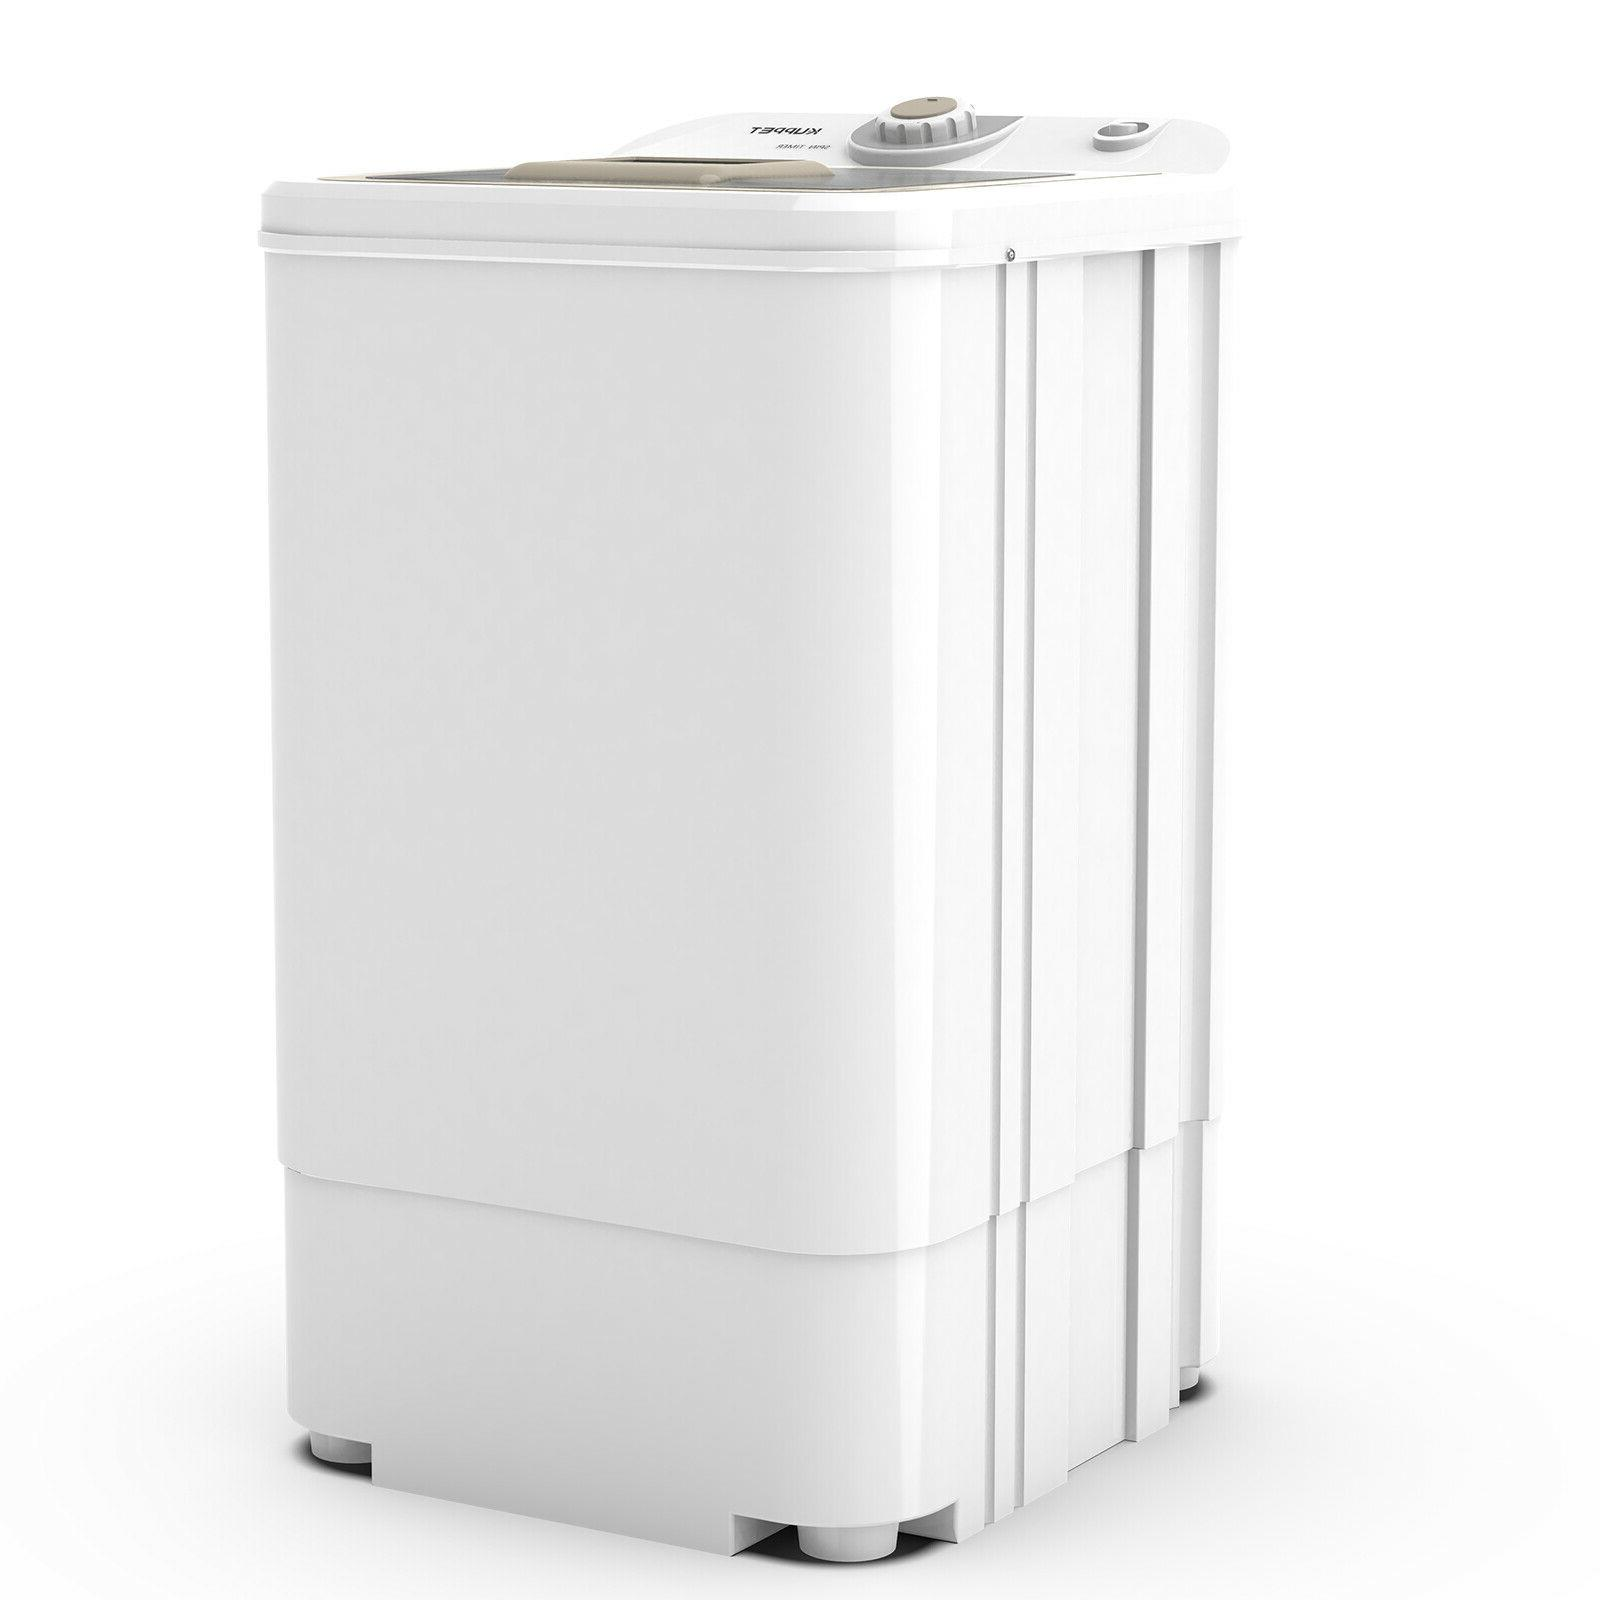 17.6 Compact Mini Dryer Draining RPM Laundry Home White